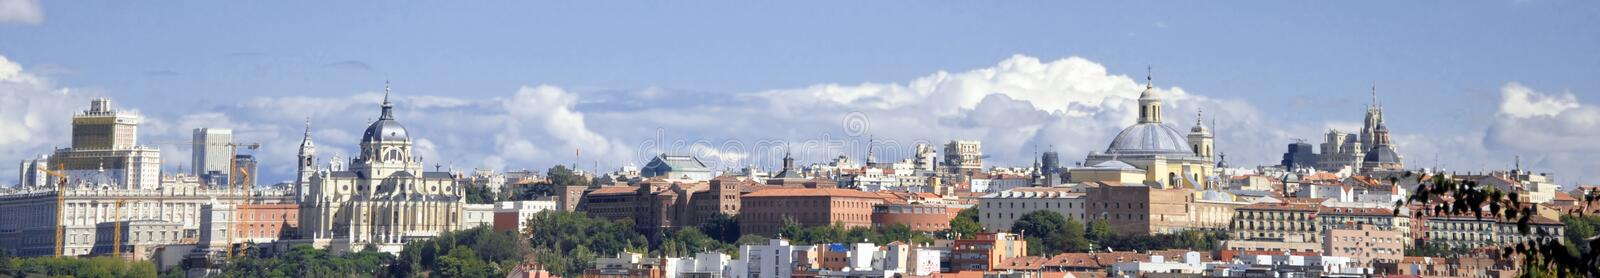 Madrid 2 royalty free stock photo